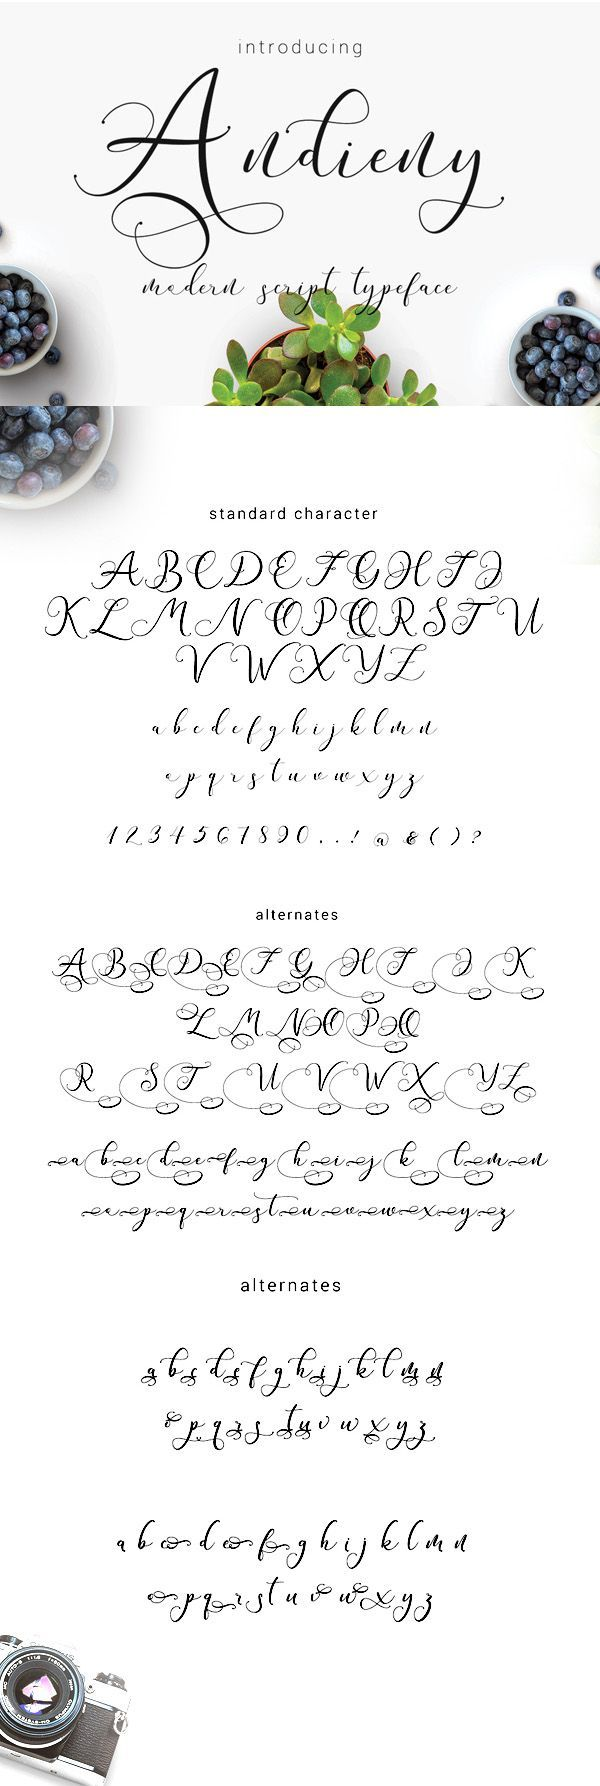 4582 Free Handwritten, Cursive Fonts 2019 | etsy sellers let's get